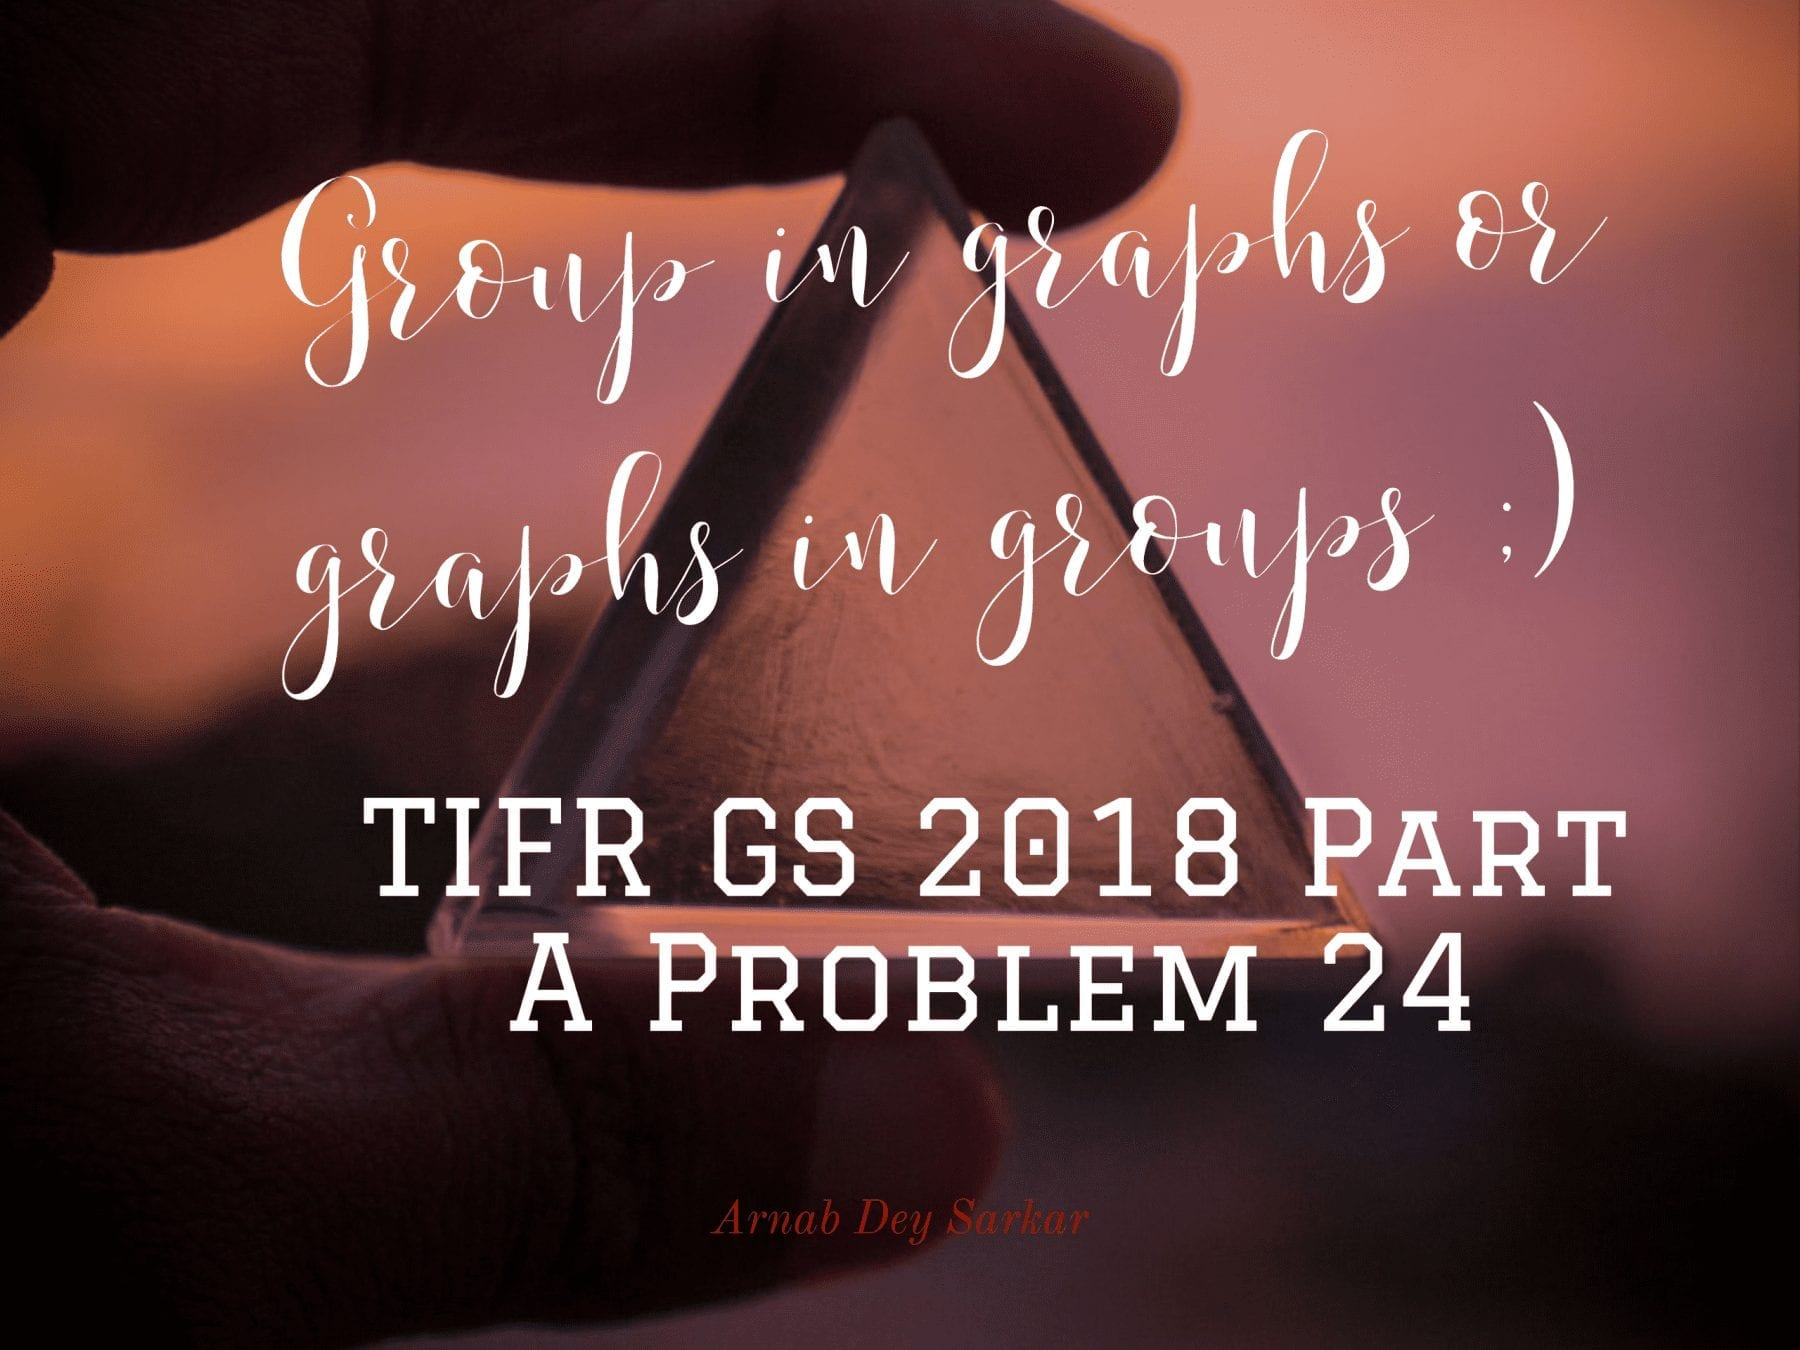 Graphs in Groups